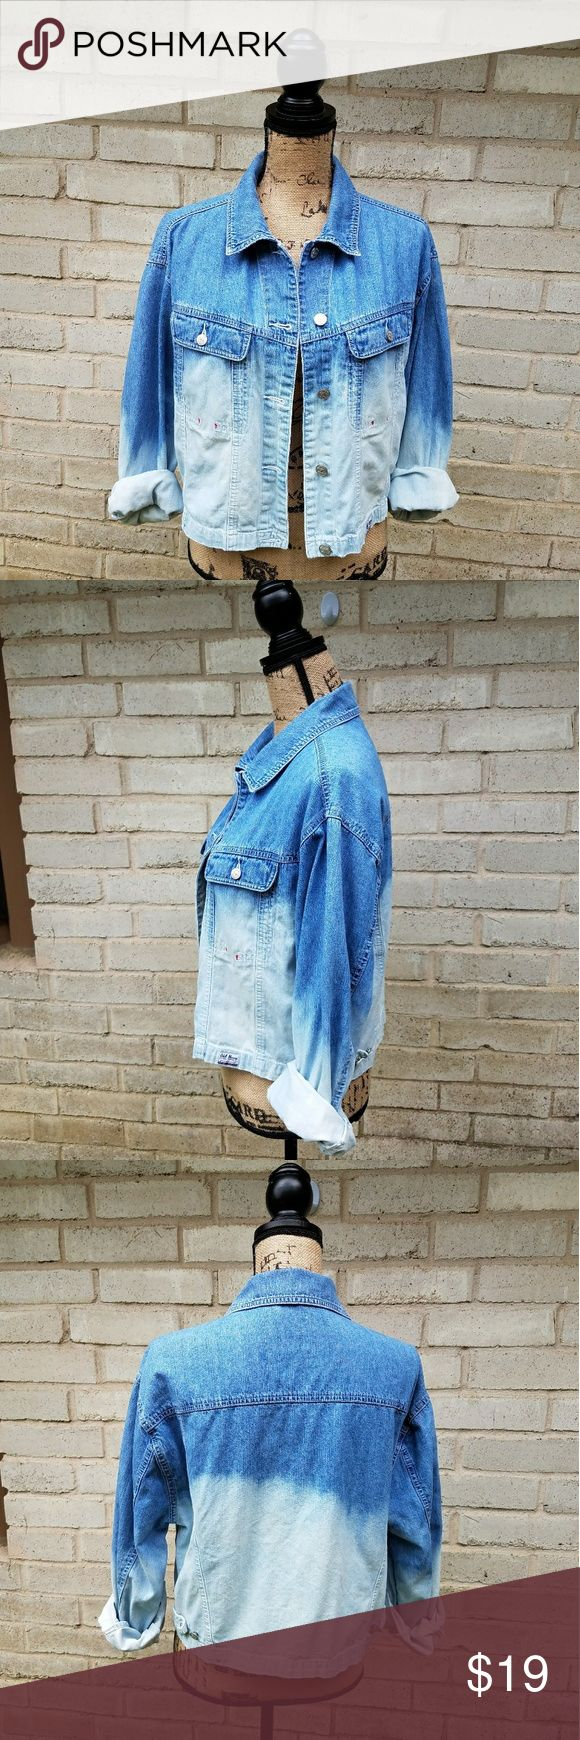 """Dip Dye Blue Denim Ombre Jacket Size XL Old navy cotton denim jacket recycled using a dip dye ombre effect. Beautiful and unique . Excellent piece for layering. Perfect to dress up or down. Tagged size XL. Great condition.  Measurements : Length 19"""" 18""""across front laying flat buttoned #ravenkittystyle #denim #jacket #recycled #upcycled #ombre #dipdye #unique #sizeXL #fall #fallfashion #layer #dressupordown Old Navy Jackets & Coats Jean Jackets"""